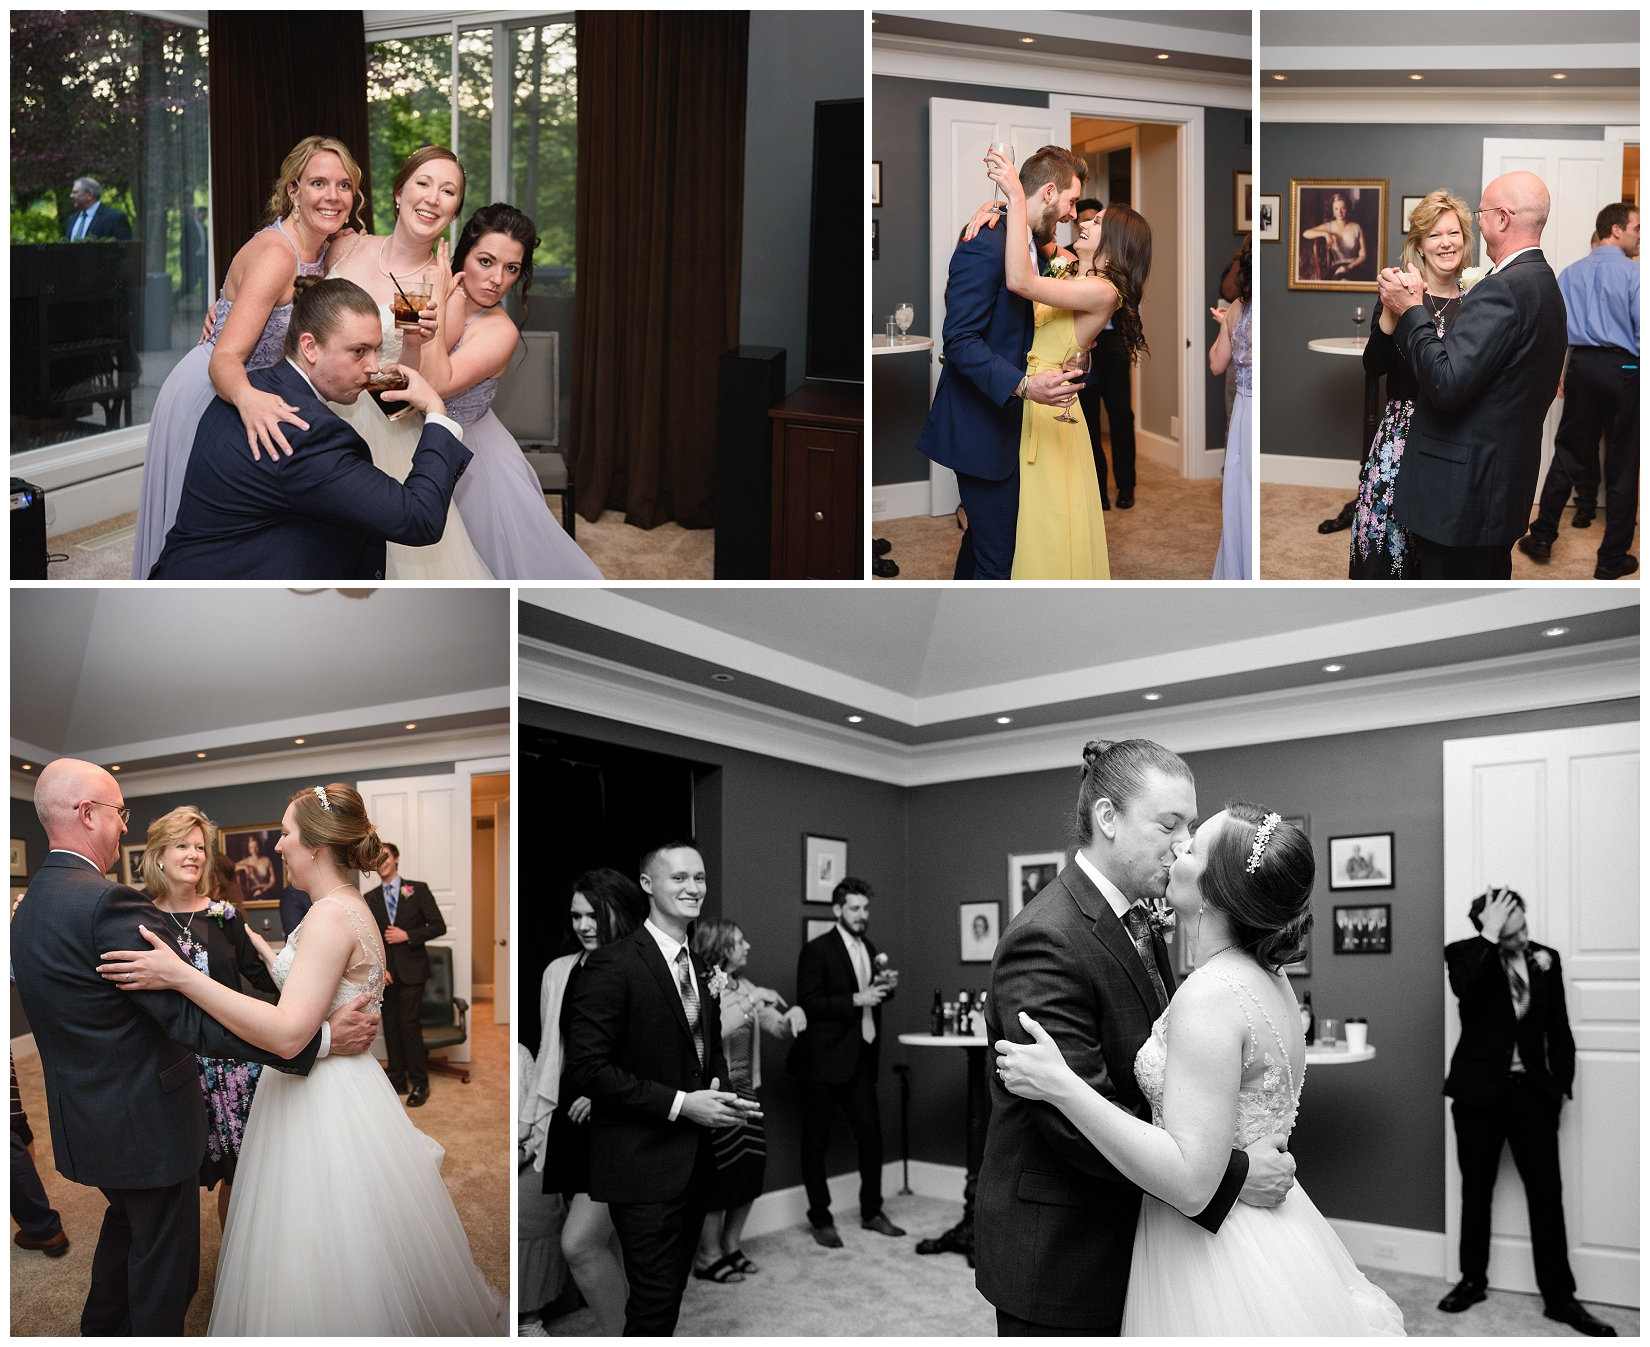 cat-alkire-wedding-photographer-indiana-chicago-indianapolis-fort-wayne_1276.jpg